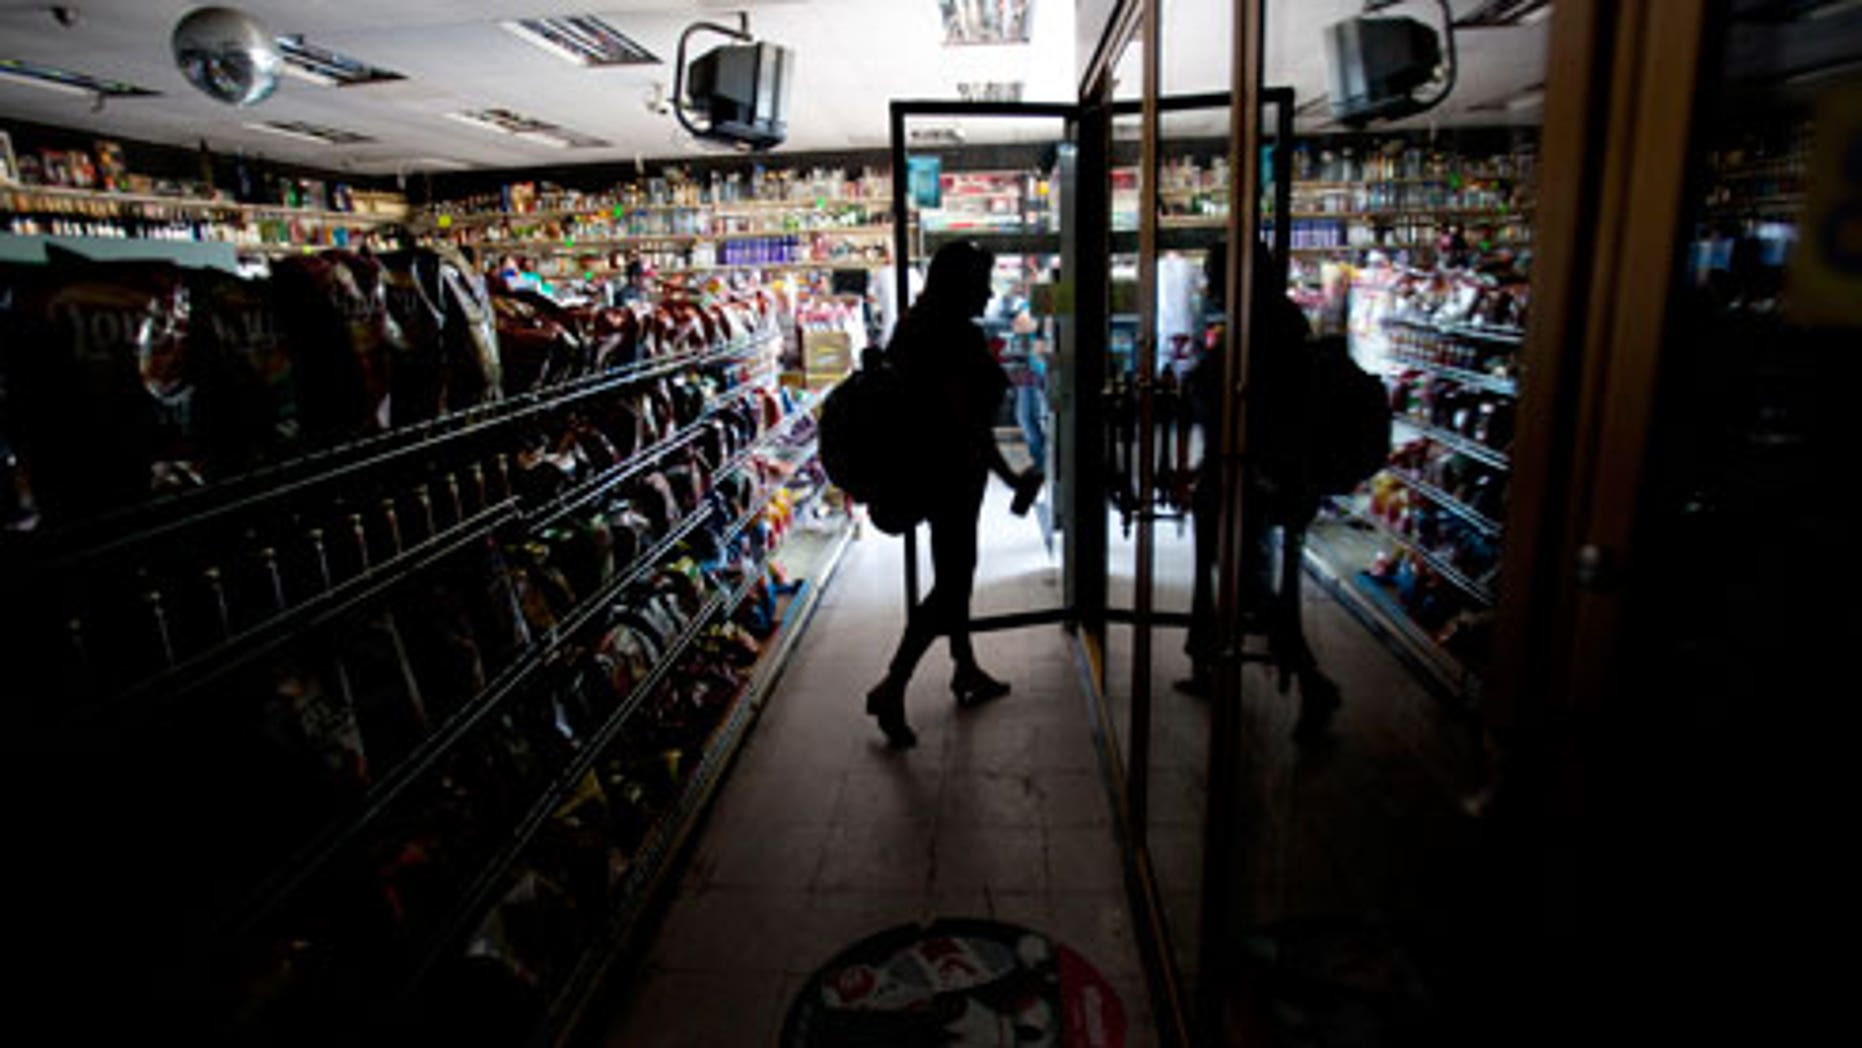 This Sept. 8, 2011 file photo shows Deborah Springs shopping in a convenience store for food items after a power outage in San Diego. There were no catastrophes caused by the widespread outage that knocked out power in a region with a population of nearly 6 million spanning both sides of the U.S.-Mexico border. But for individuals and institutions alike it was a defining moment that separated the Boy Scouts of the world from the rest of us.